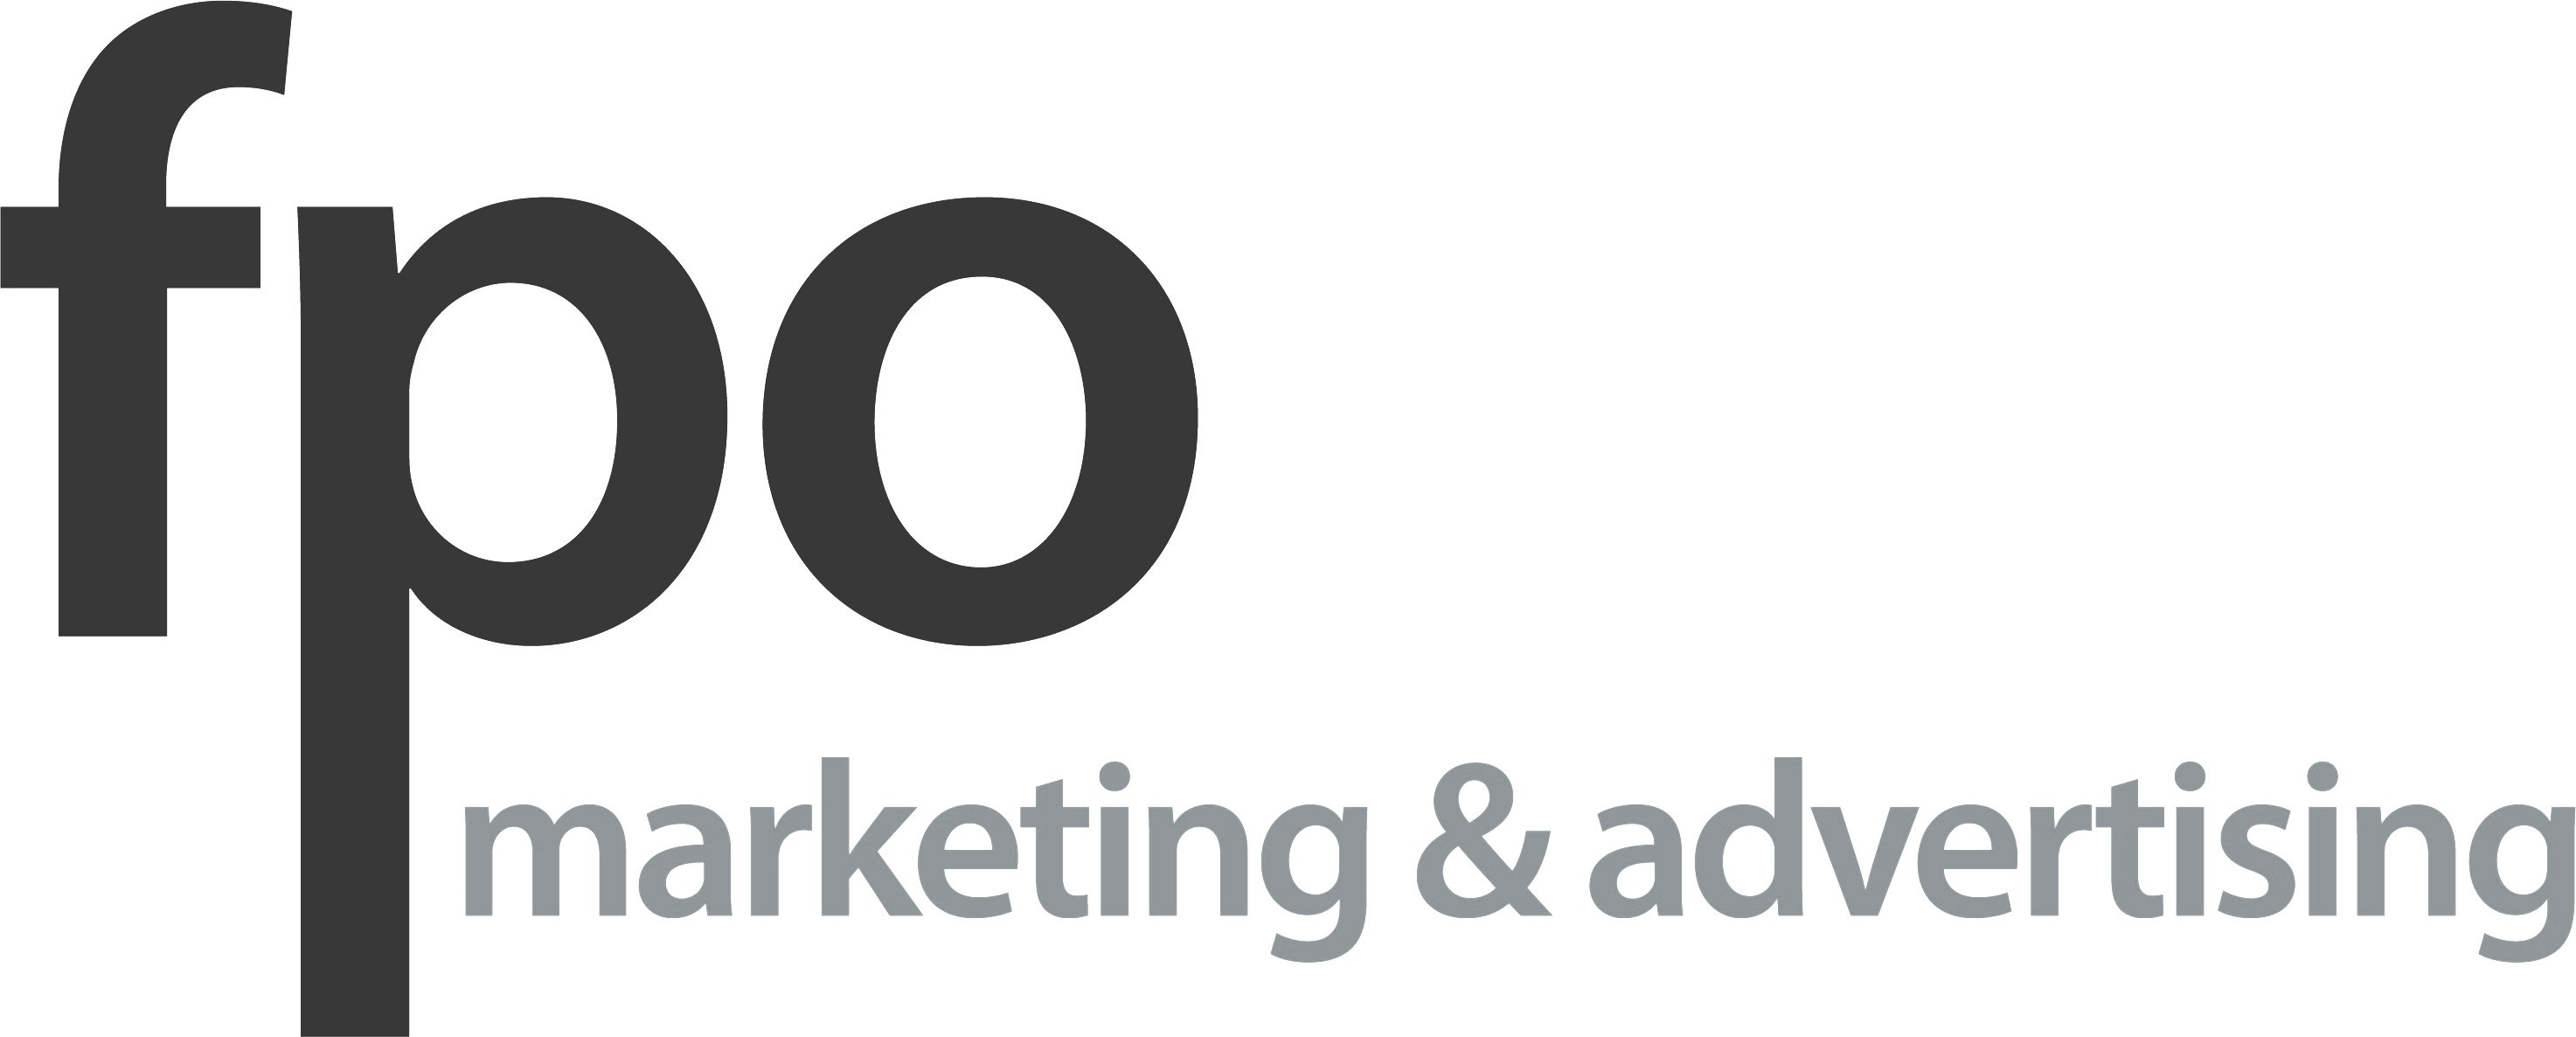 FPO Marketing & Advertising